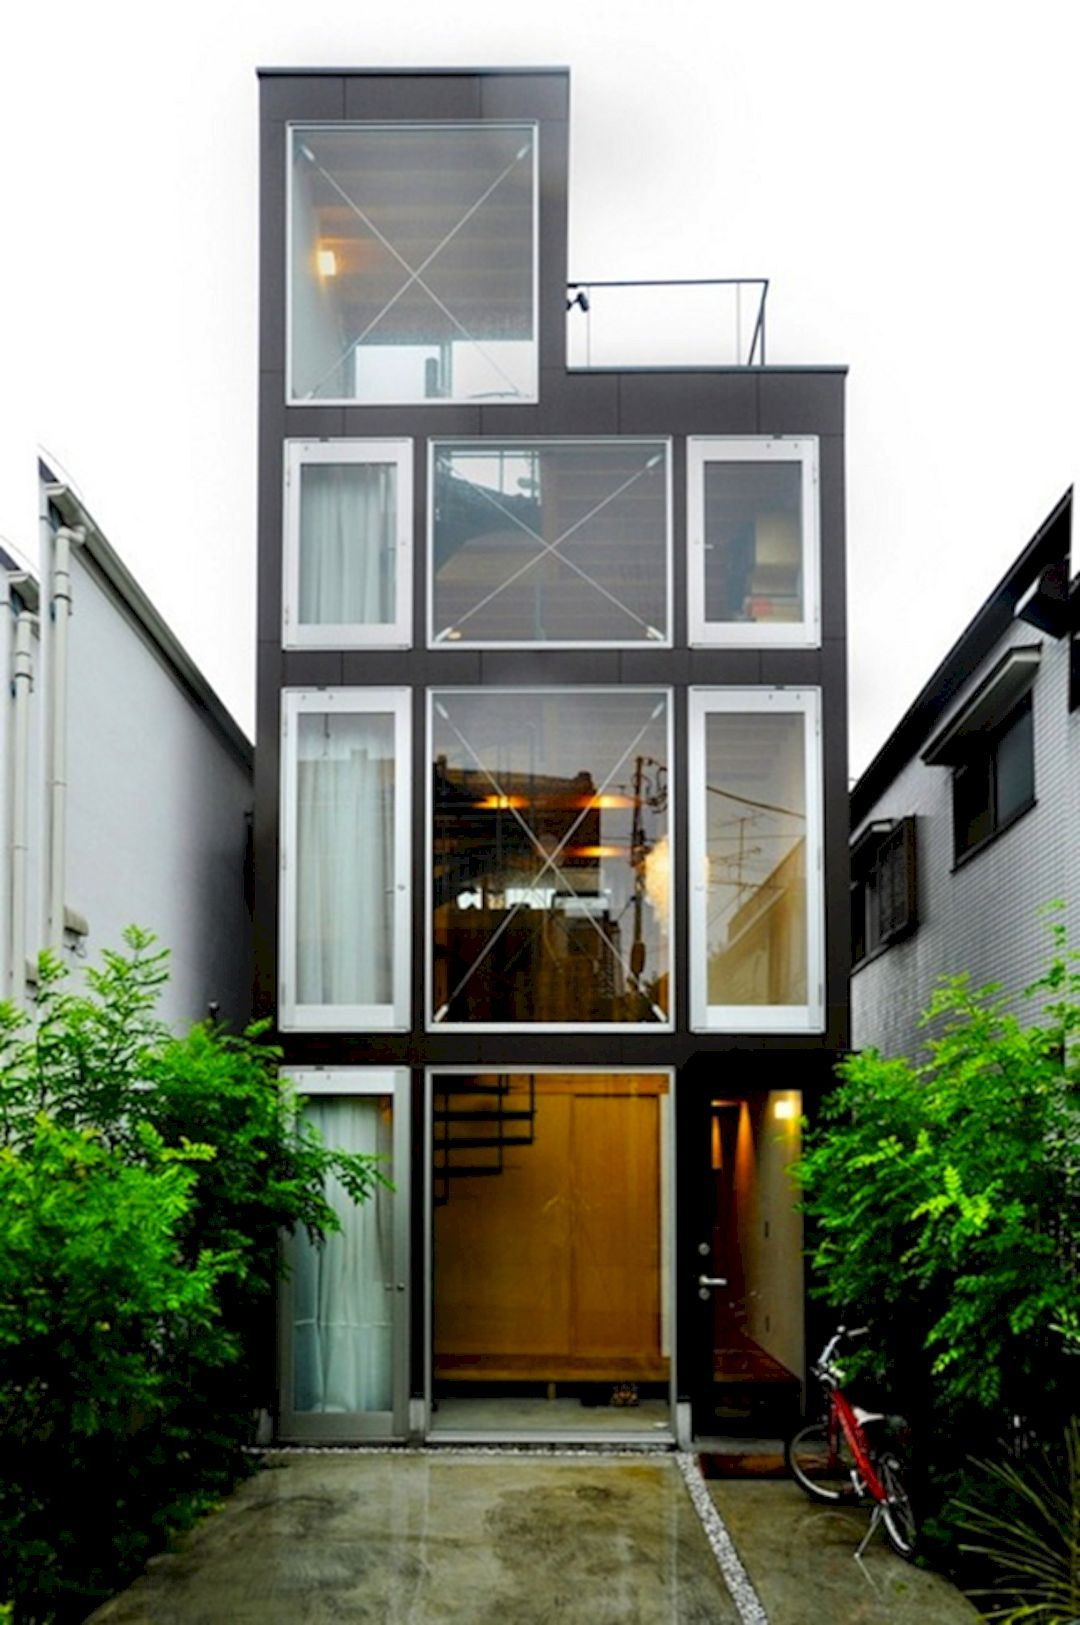 7 Benefits of Having A Container House | House Design and Plan Ideas on conex homes floor plans, steel container home plans, container gardening vegetable garden, underground shipping container house plans, container home plans with courtyards, 2 story shipping container home plans, simple container home plans, container steel frame house, 20 foot shipping container home plans, 40-foot container home plans, 40 container house plans, 20ft shipping container home plans, cargo container house plans, freight container home plans, small home open floor house plans, container floor plans, small shipping container home plans, tron shipping container house plans, container home building plans, storage container home plans,